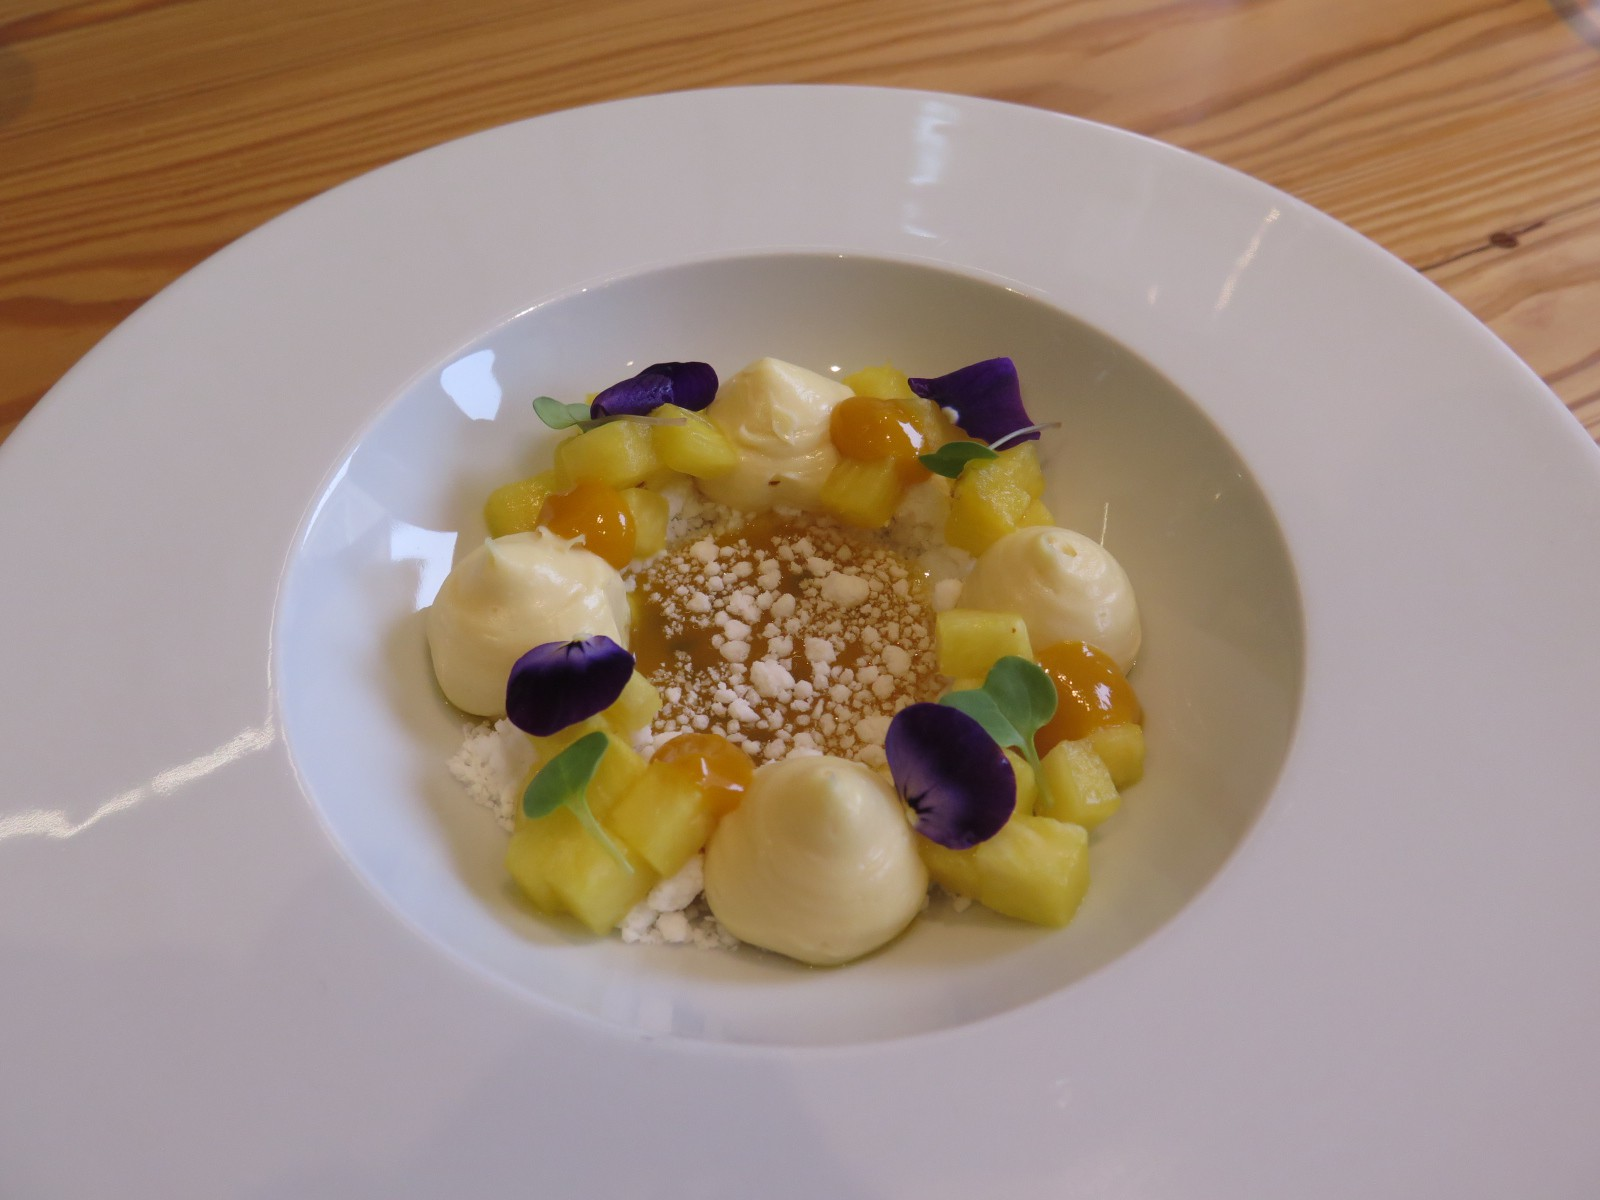 Carnaval da Bica / Coconut mousse with pineapple and passionfruit